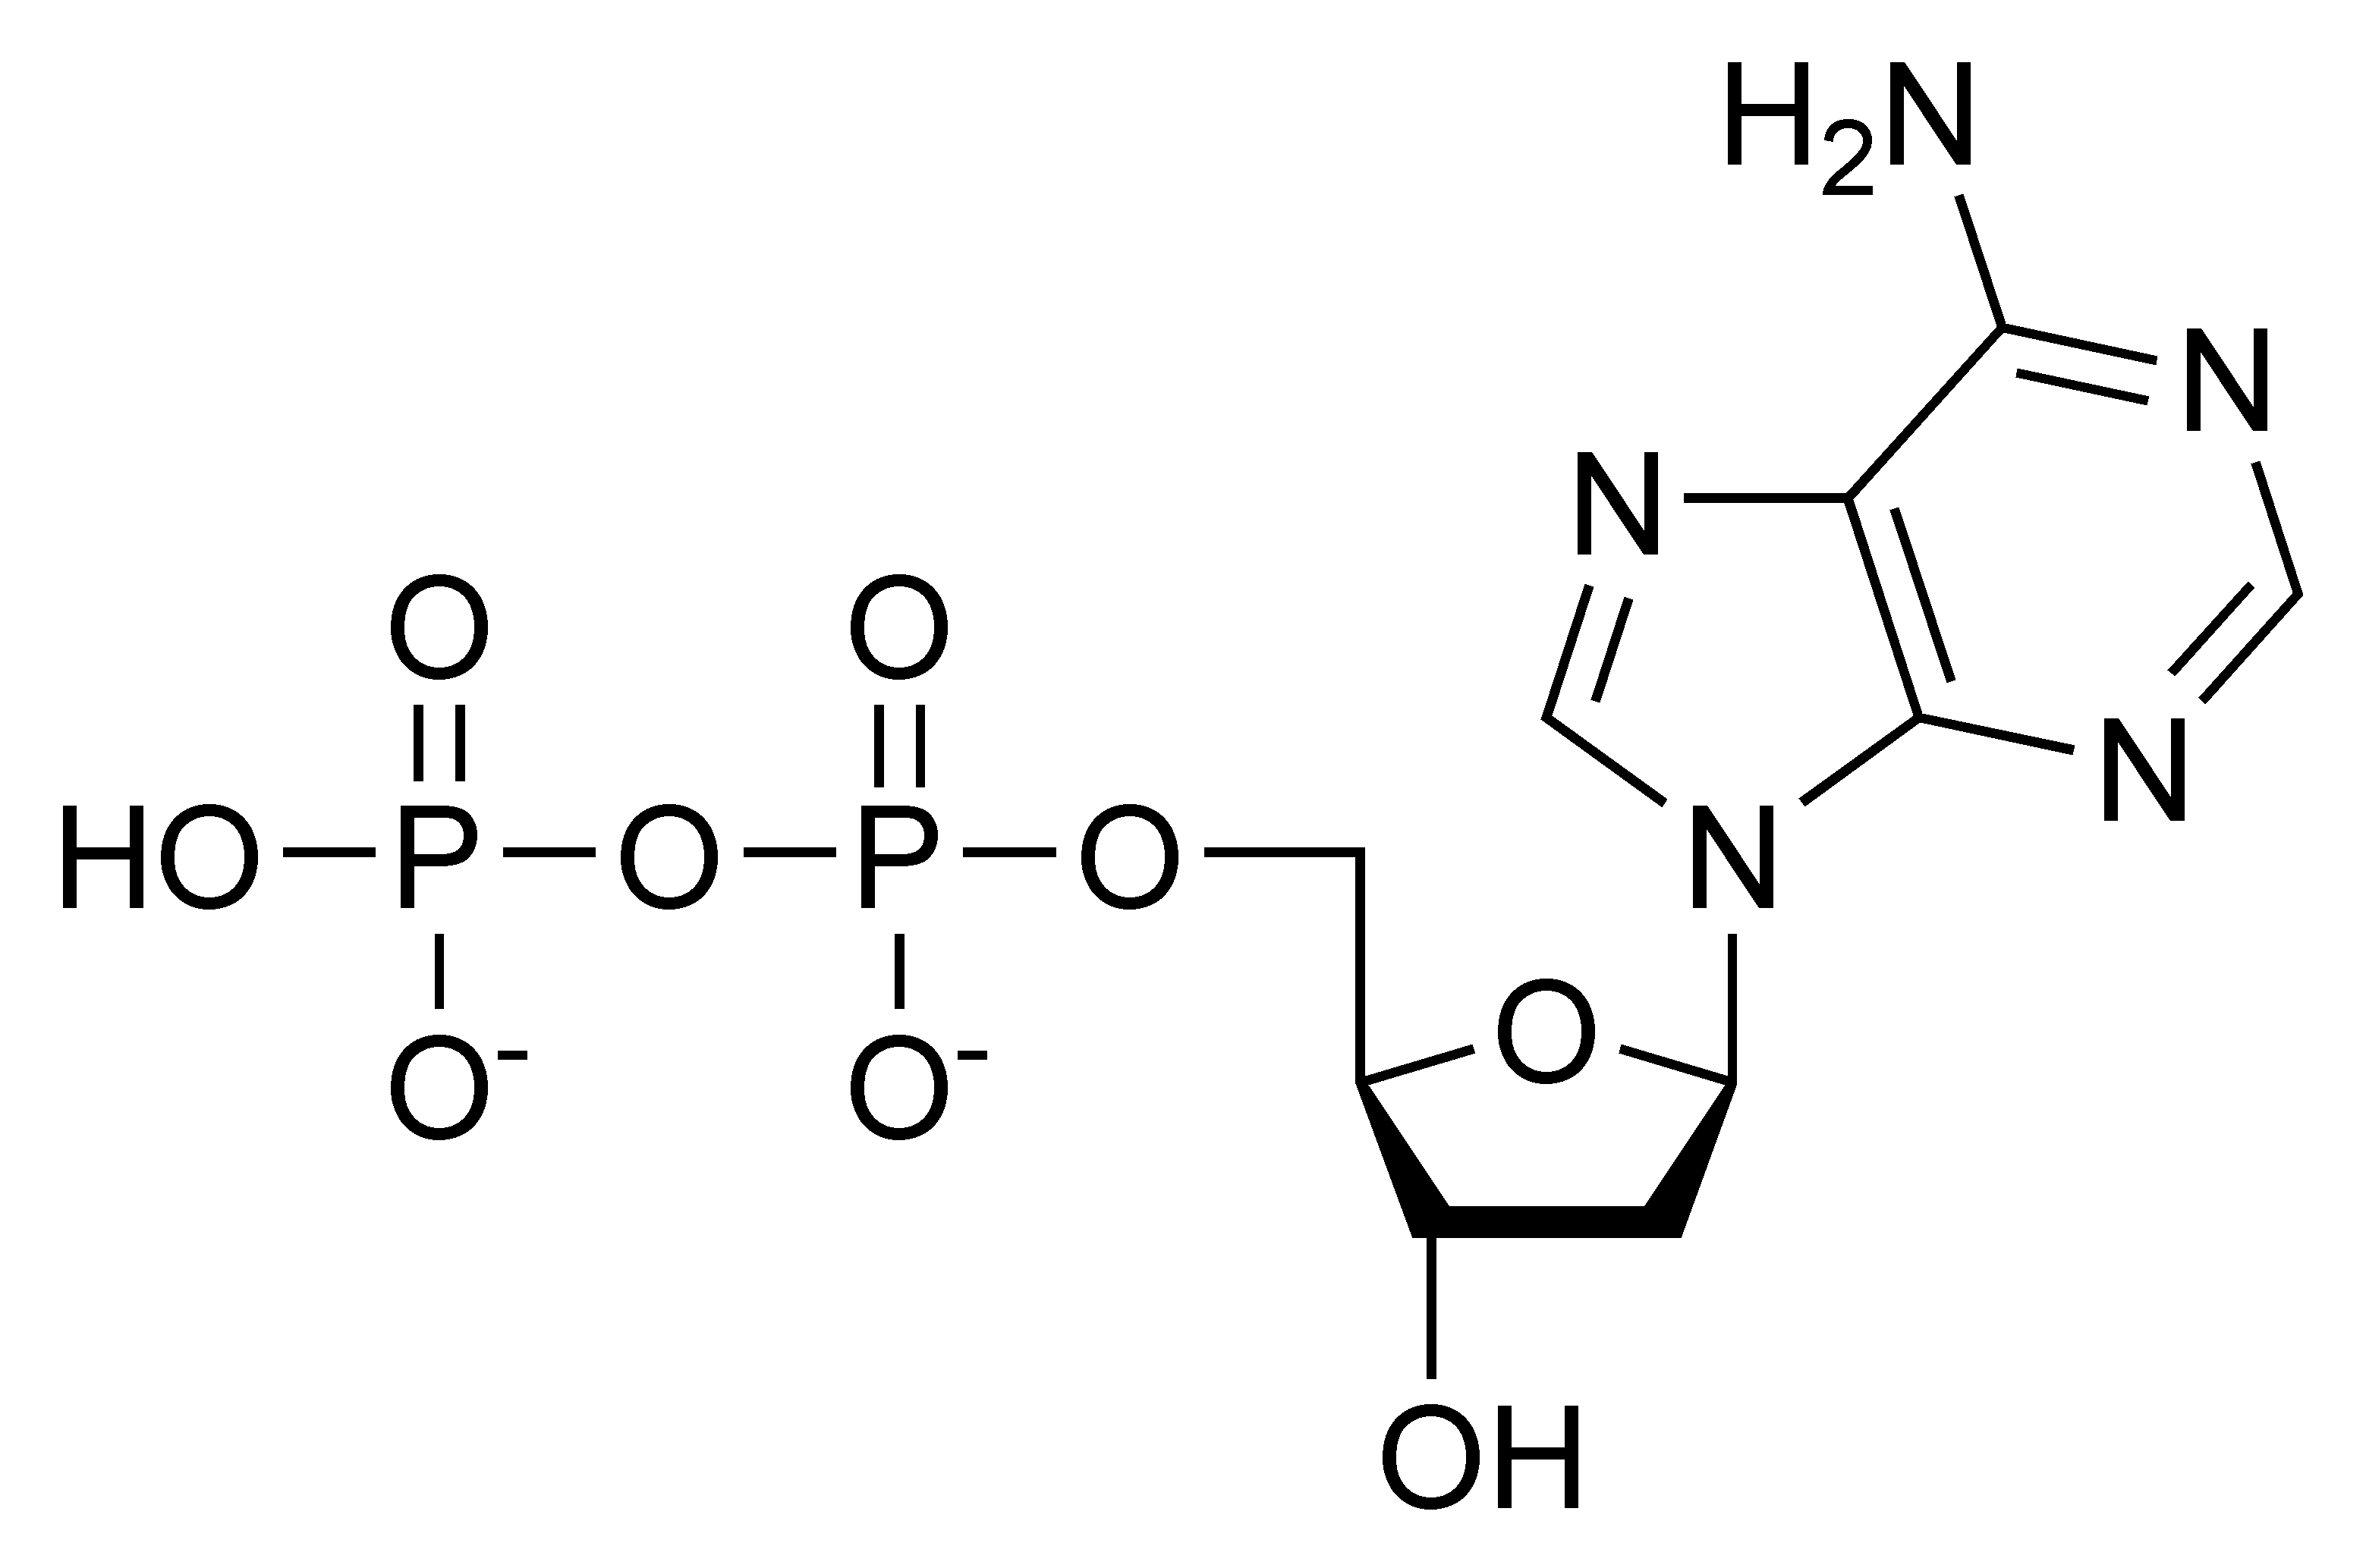 Chemical structure of deoxyadenosine diphosphate